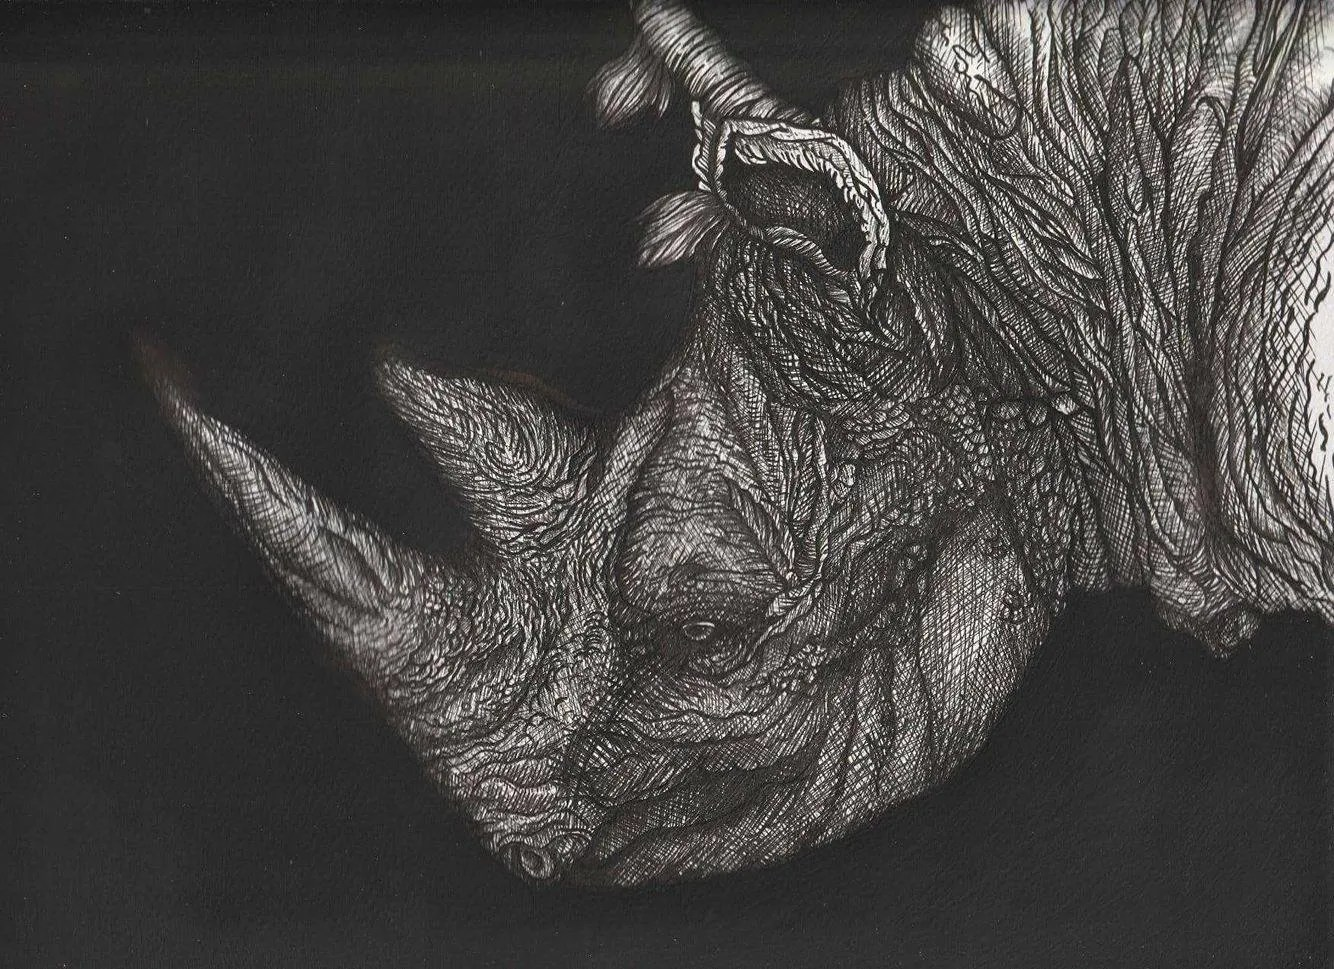 Artwork of an endangered rhino becomes Eksentrika's Art of the Year 2017